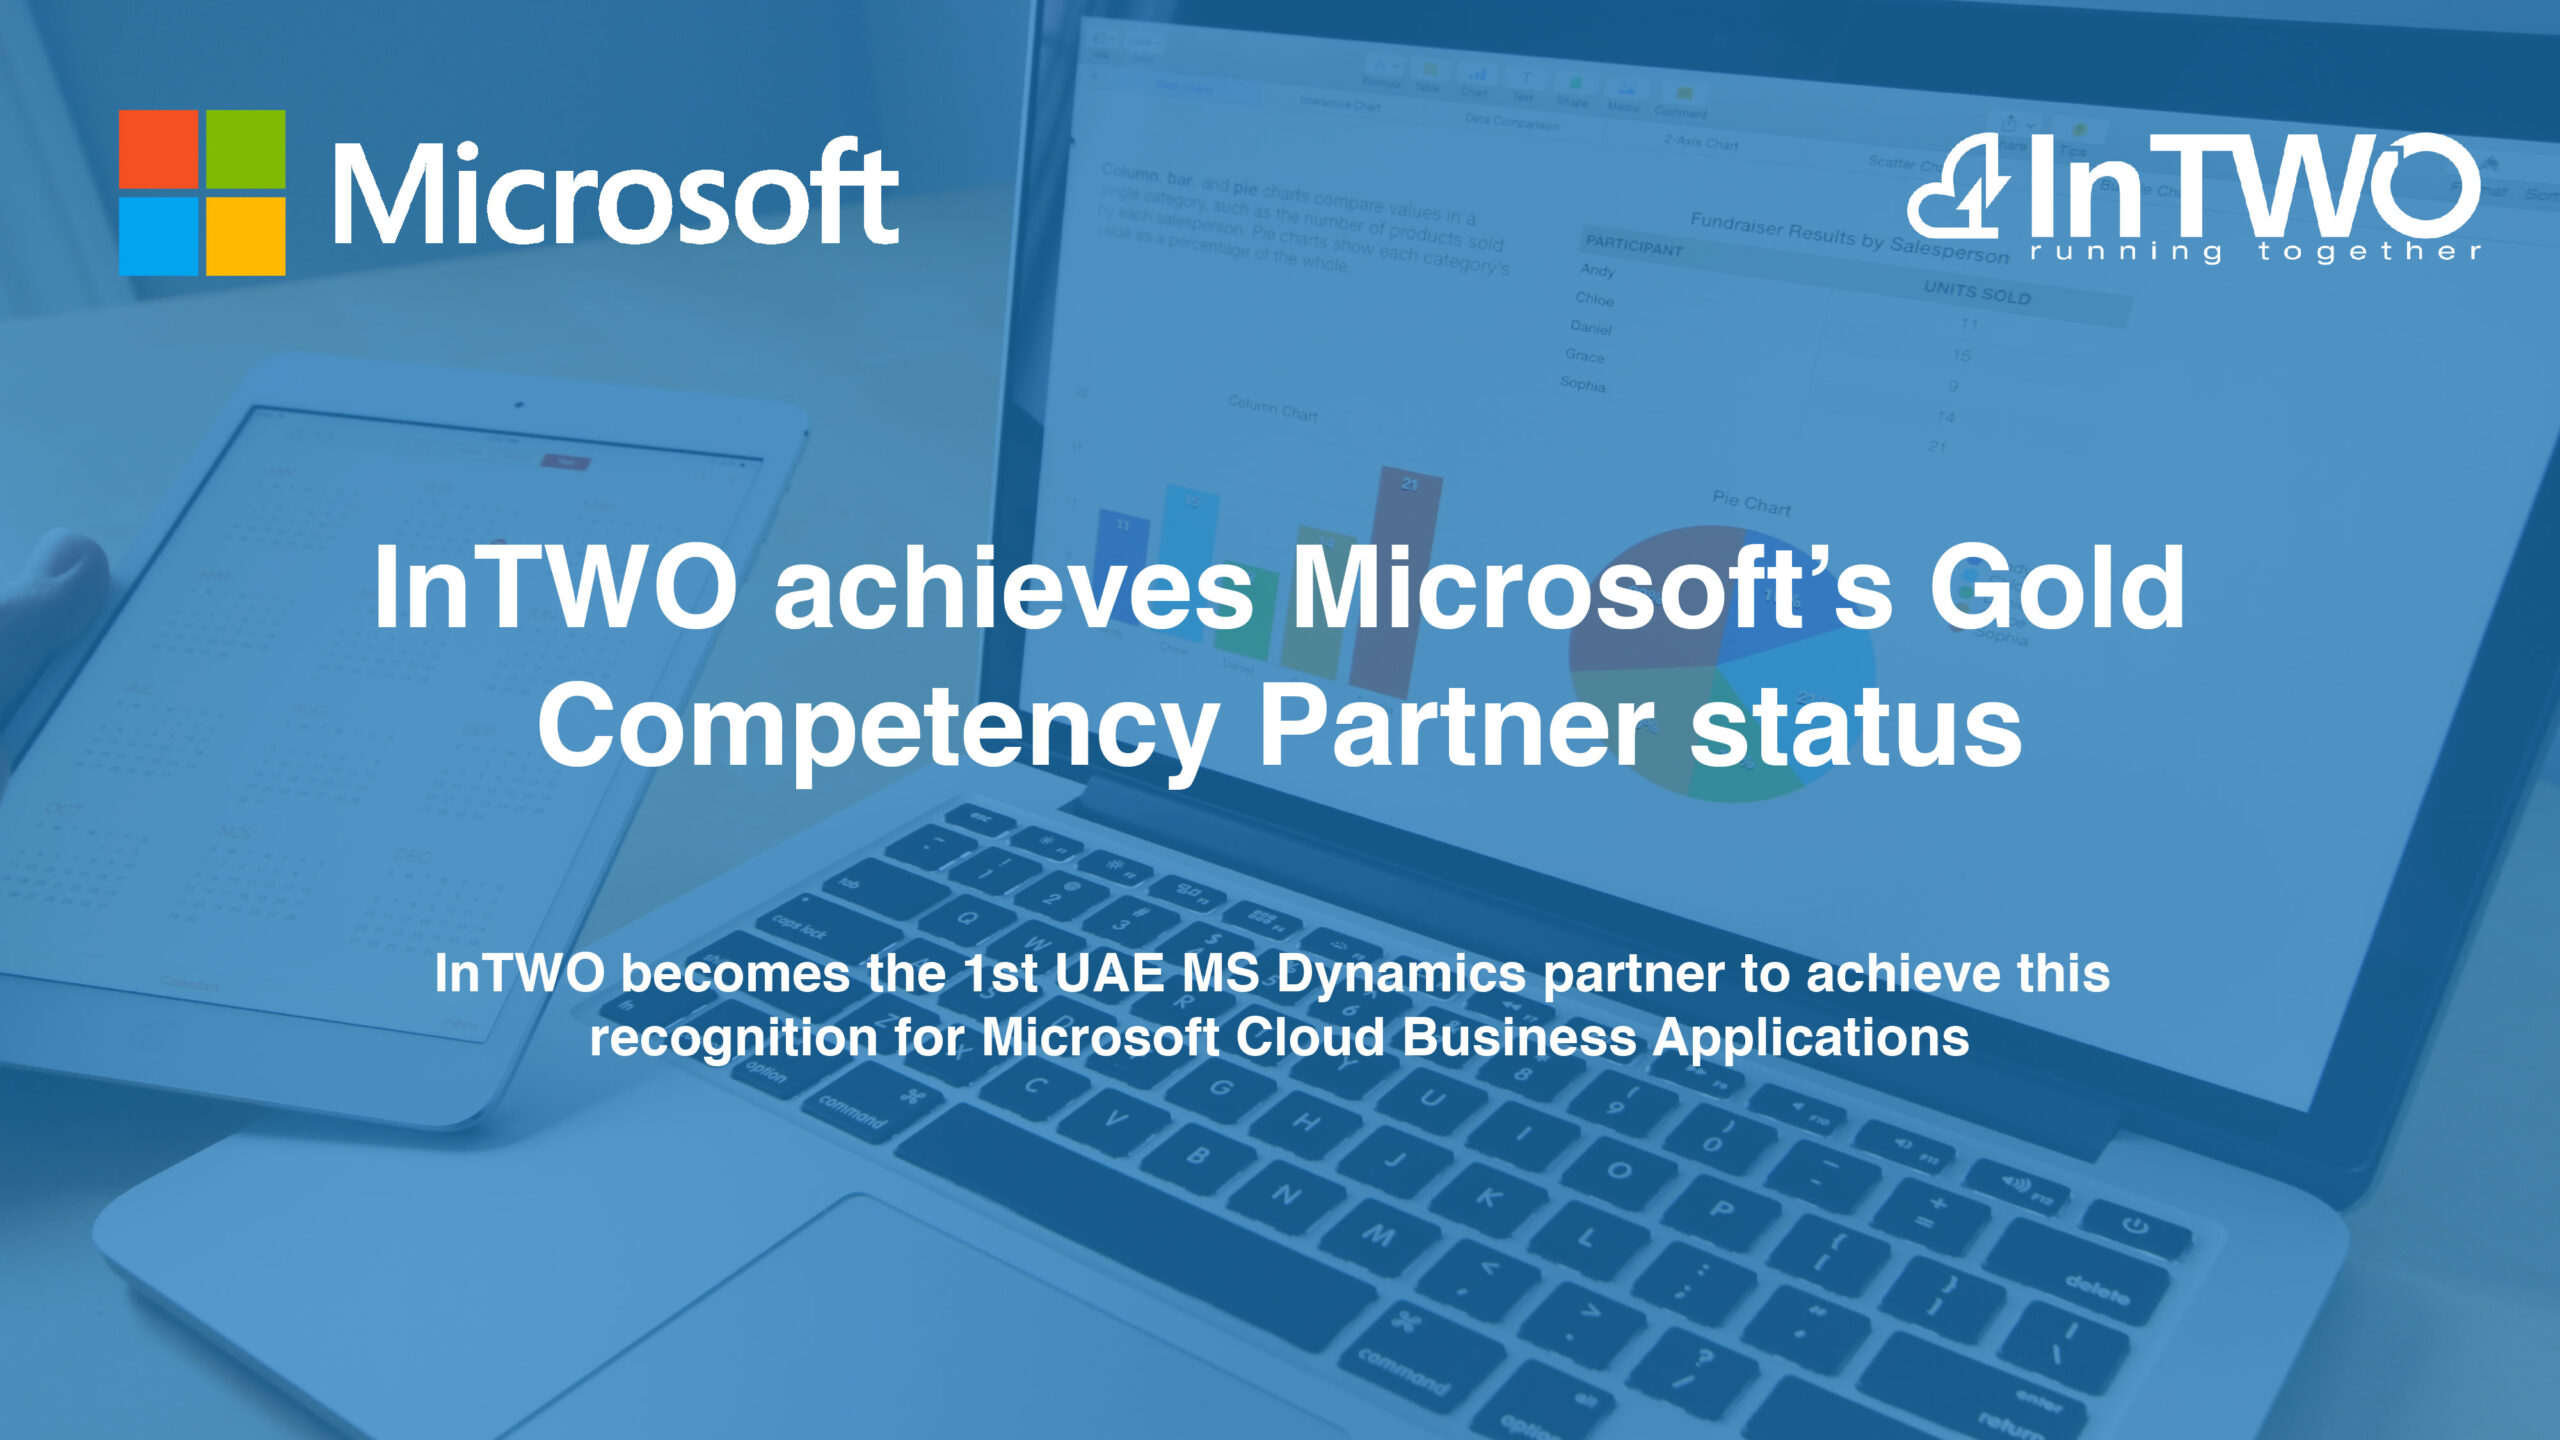 InTWO achieves Microsoft's Gold Competency Partner status